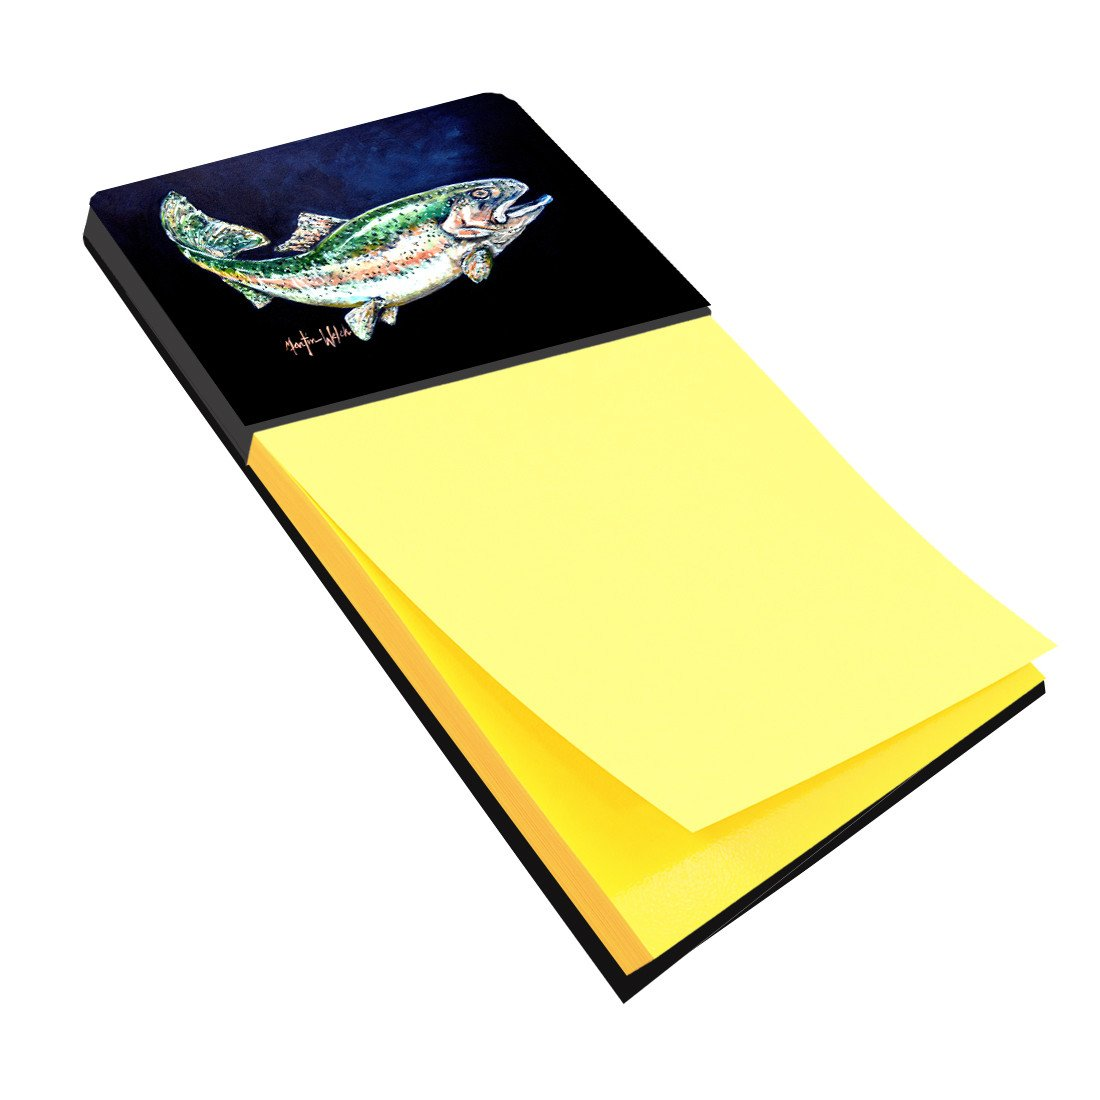 Deep Blue Rainbow Trout Sticky Note Holder MW1213SN by Caroline's Treasures